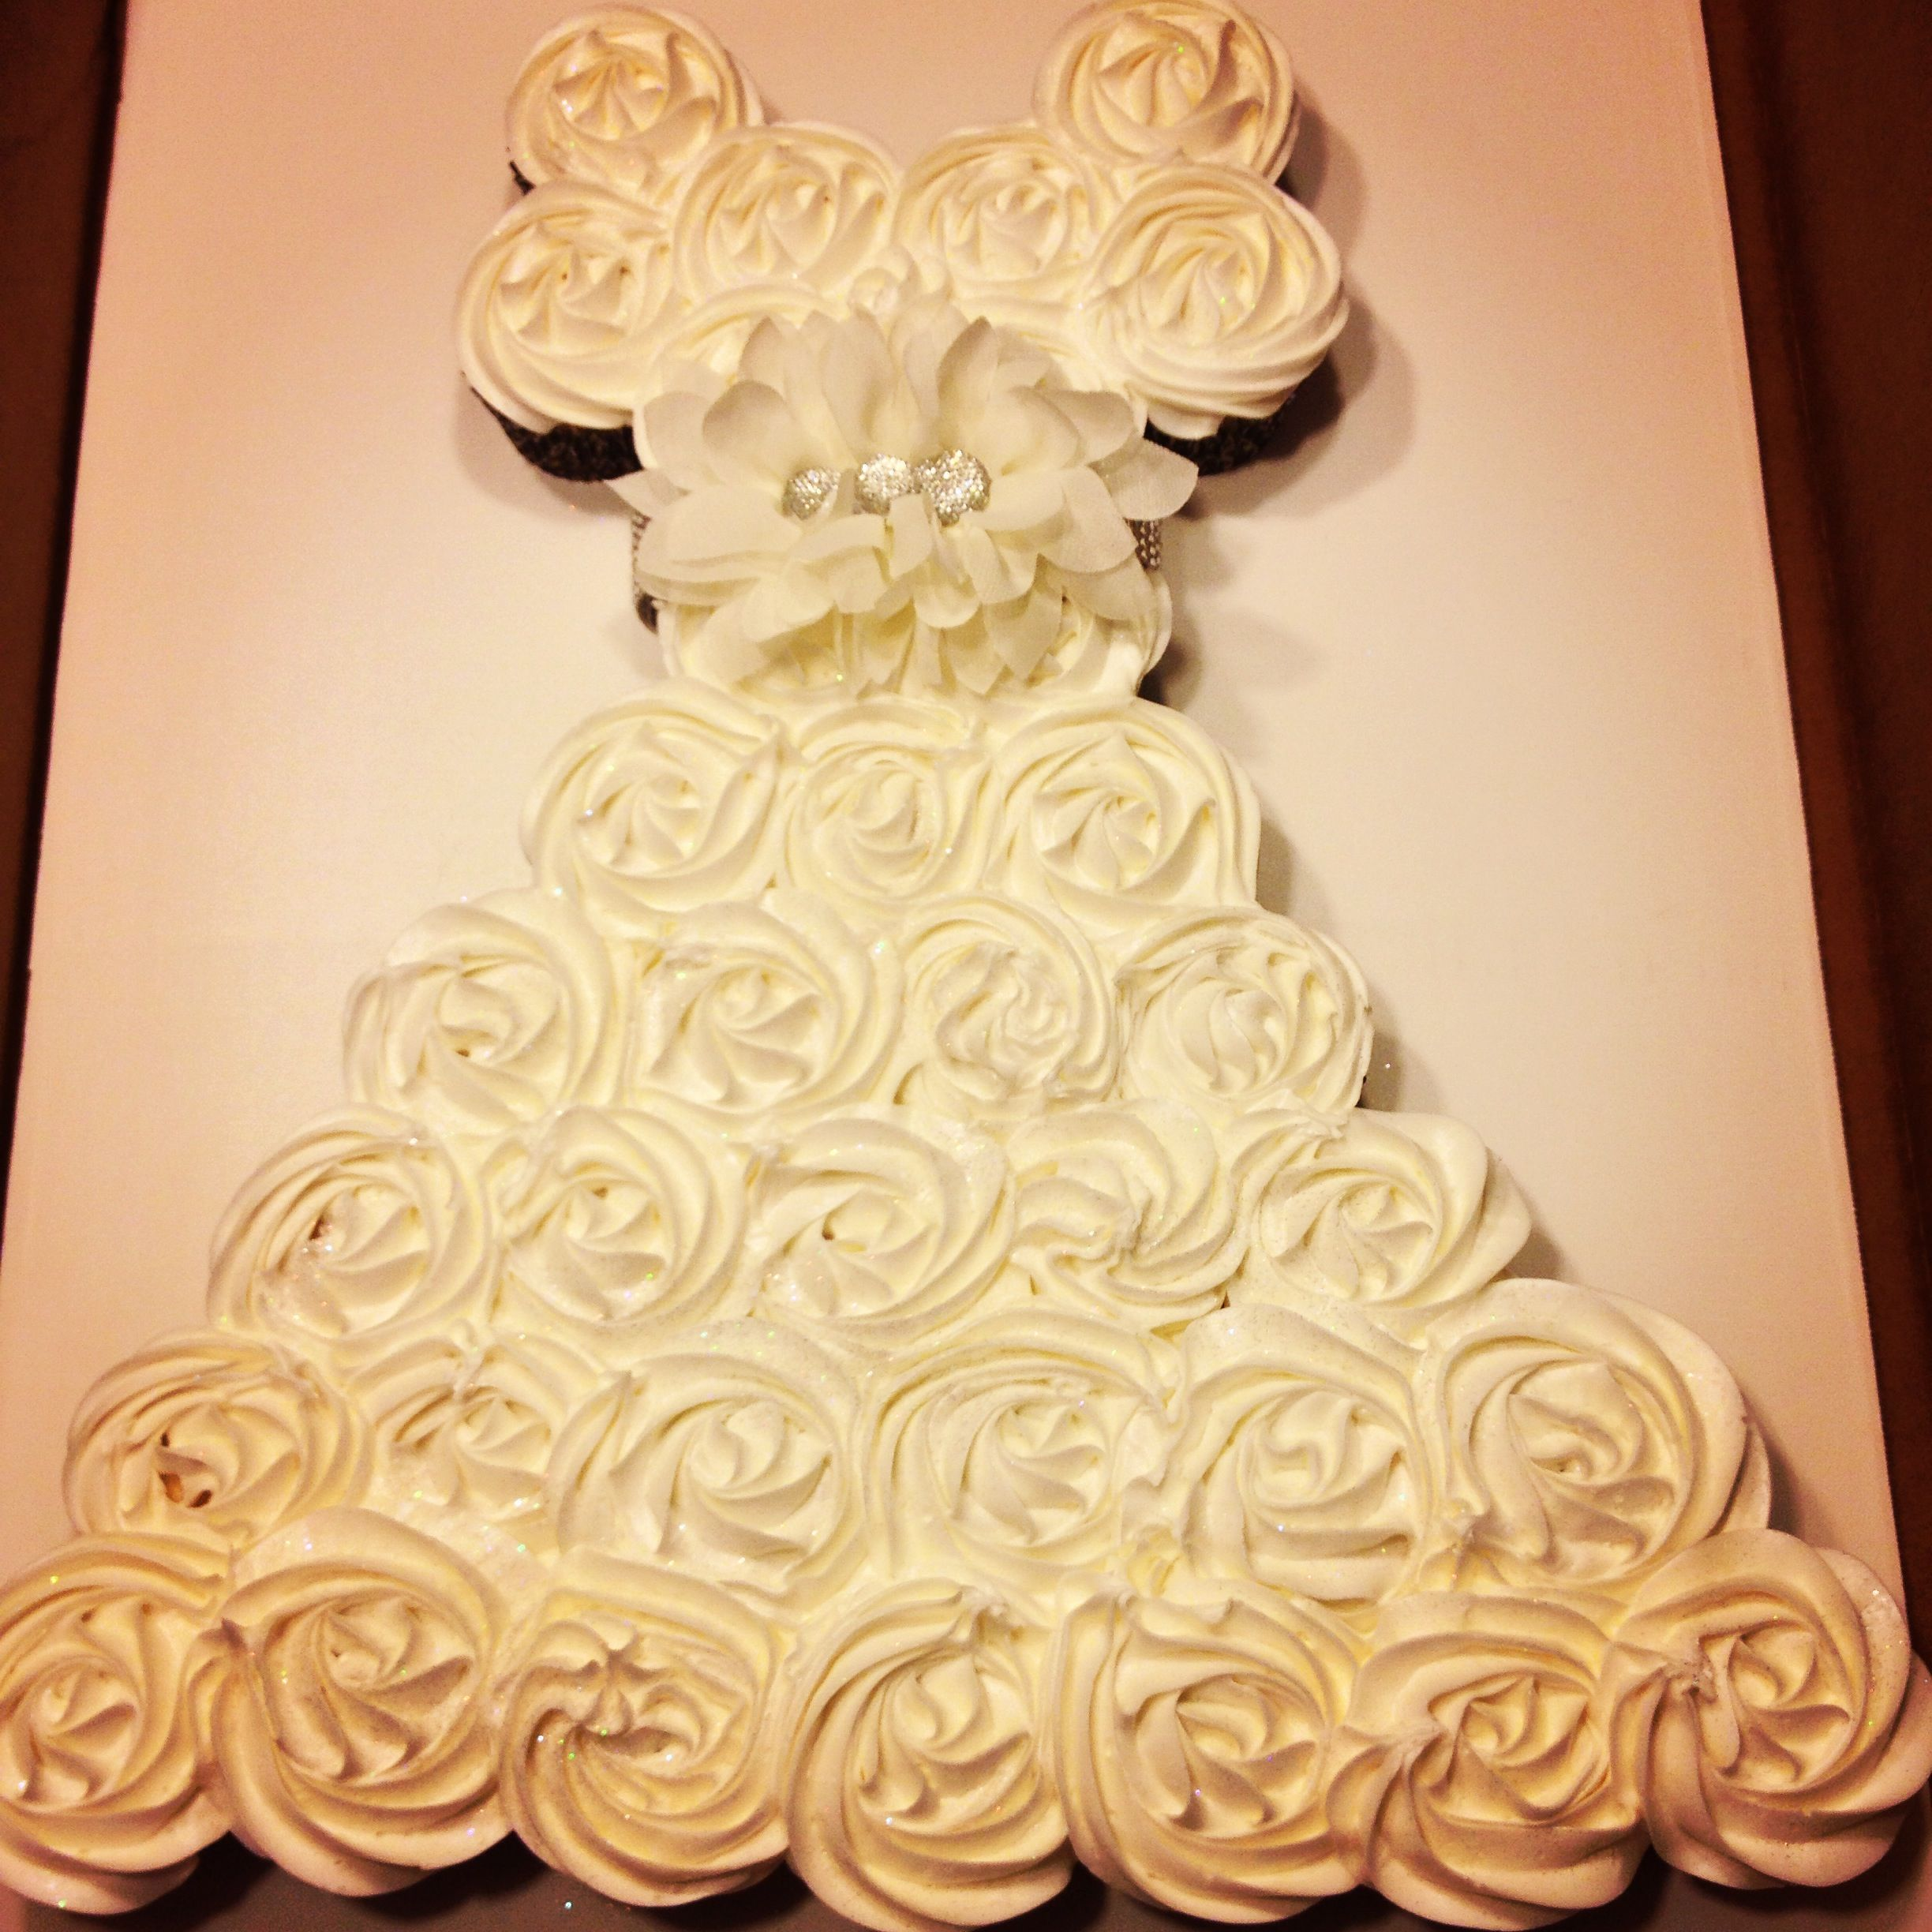 cupcake recipes for bridal shower%0A Wedding dress cupcake cake  Just in case I ever throw a bridal shower